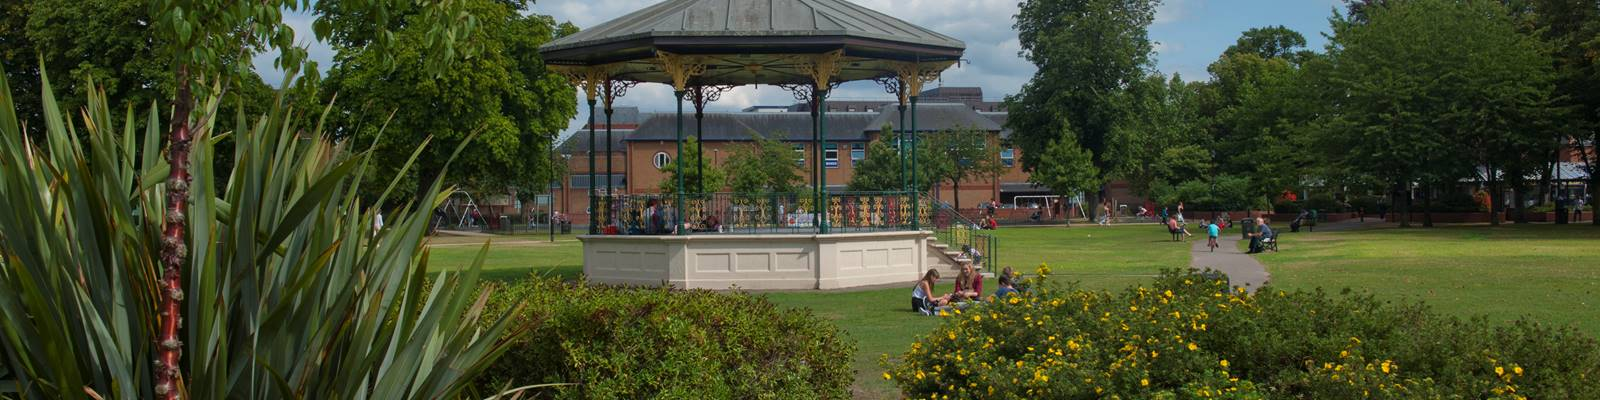 Bandstand_Eastleigh_11.jpg